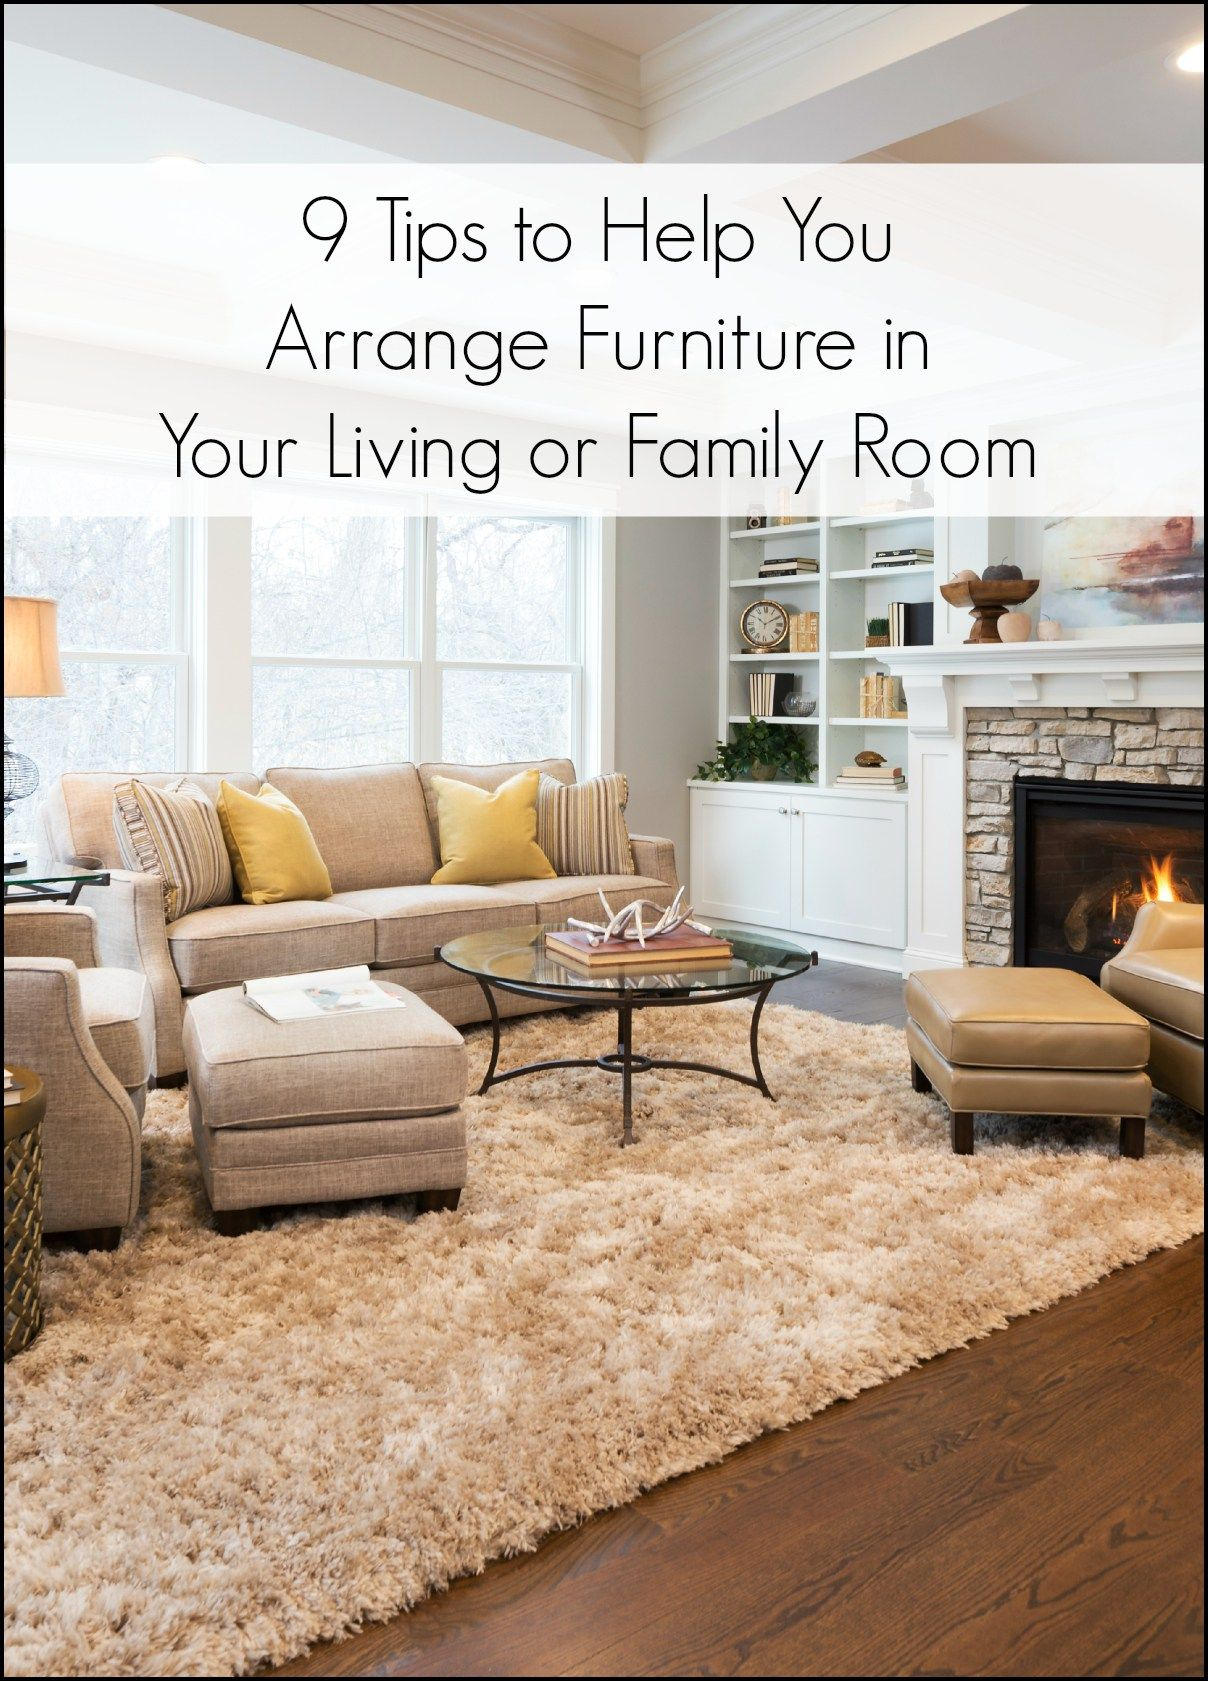 how to arrange living room furniture designs for condo units 9 tips arranging in a or family help you your